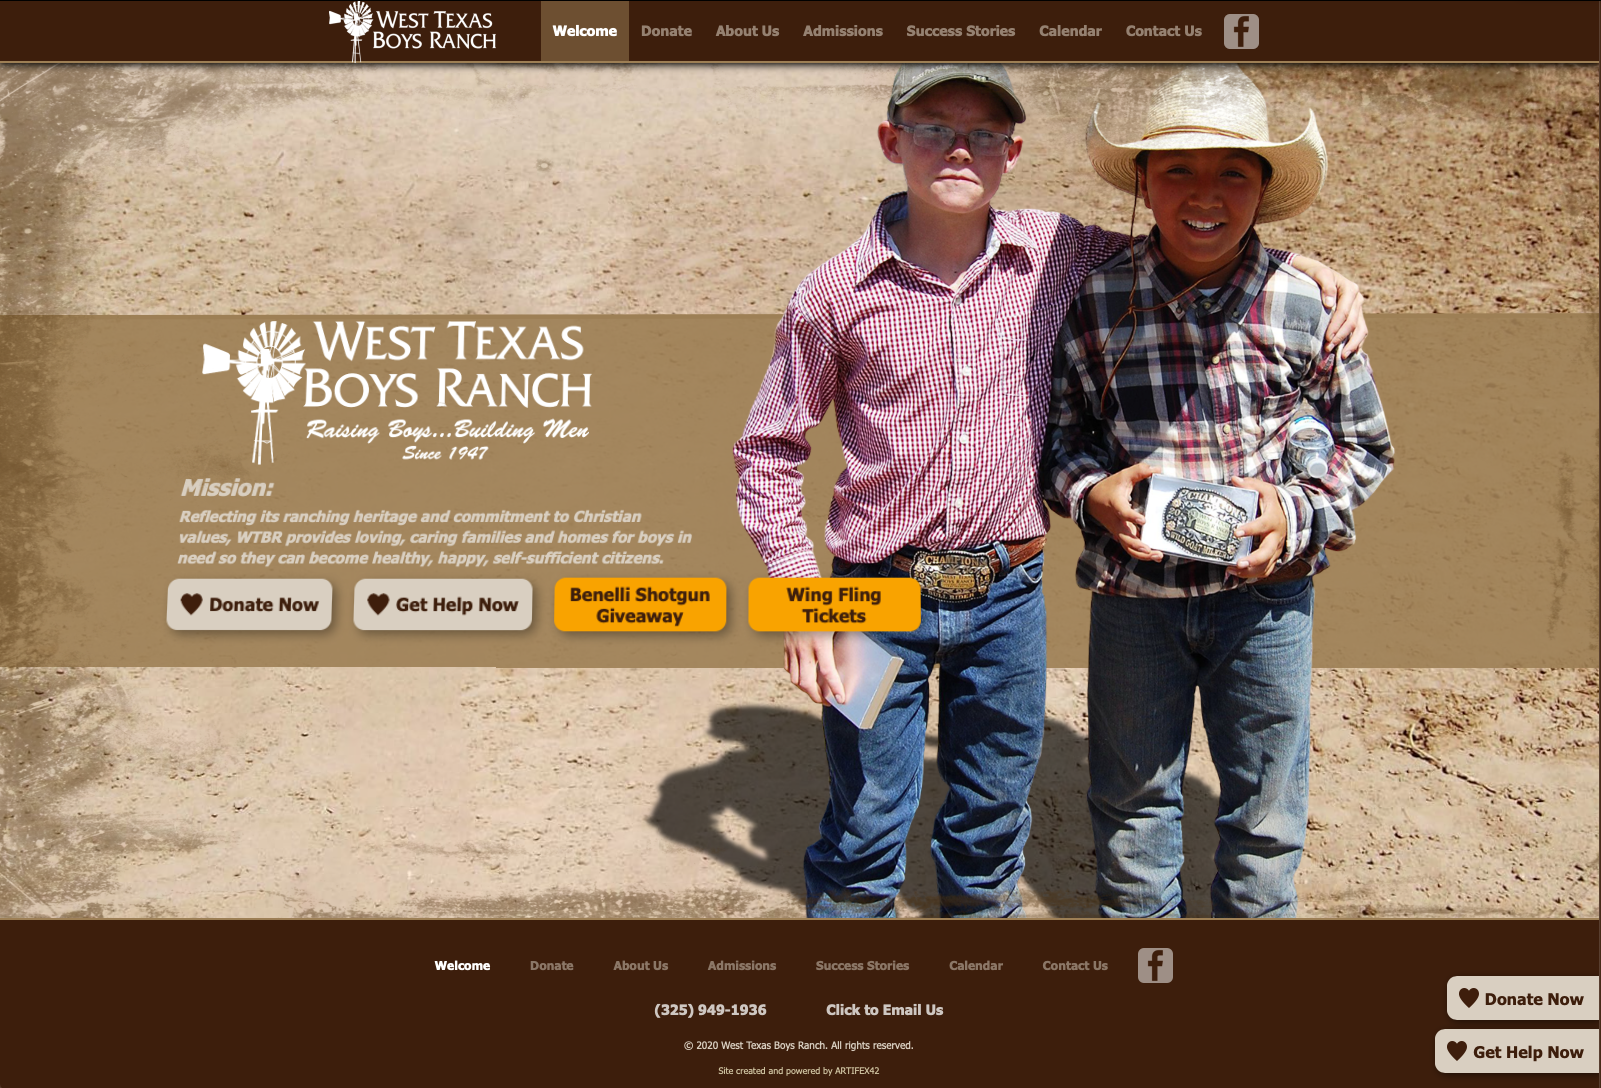 West Texas Boys Ranch